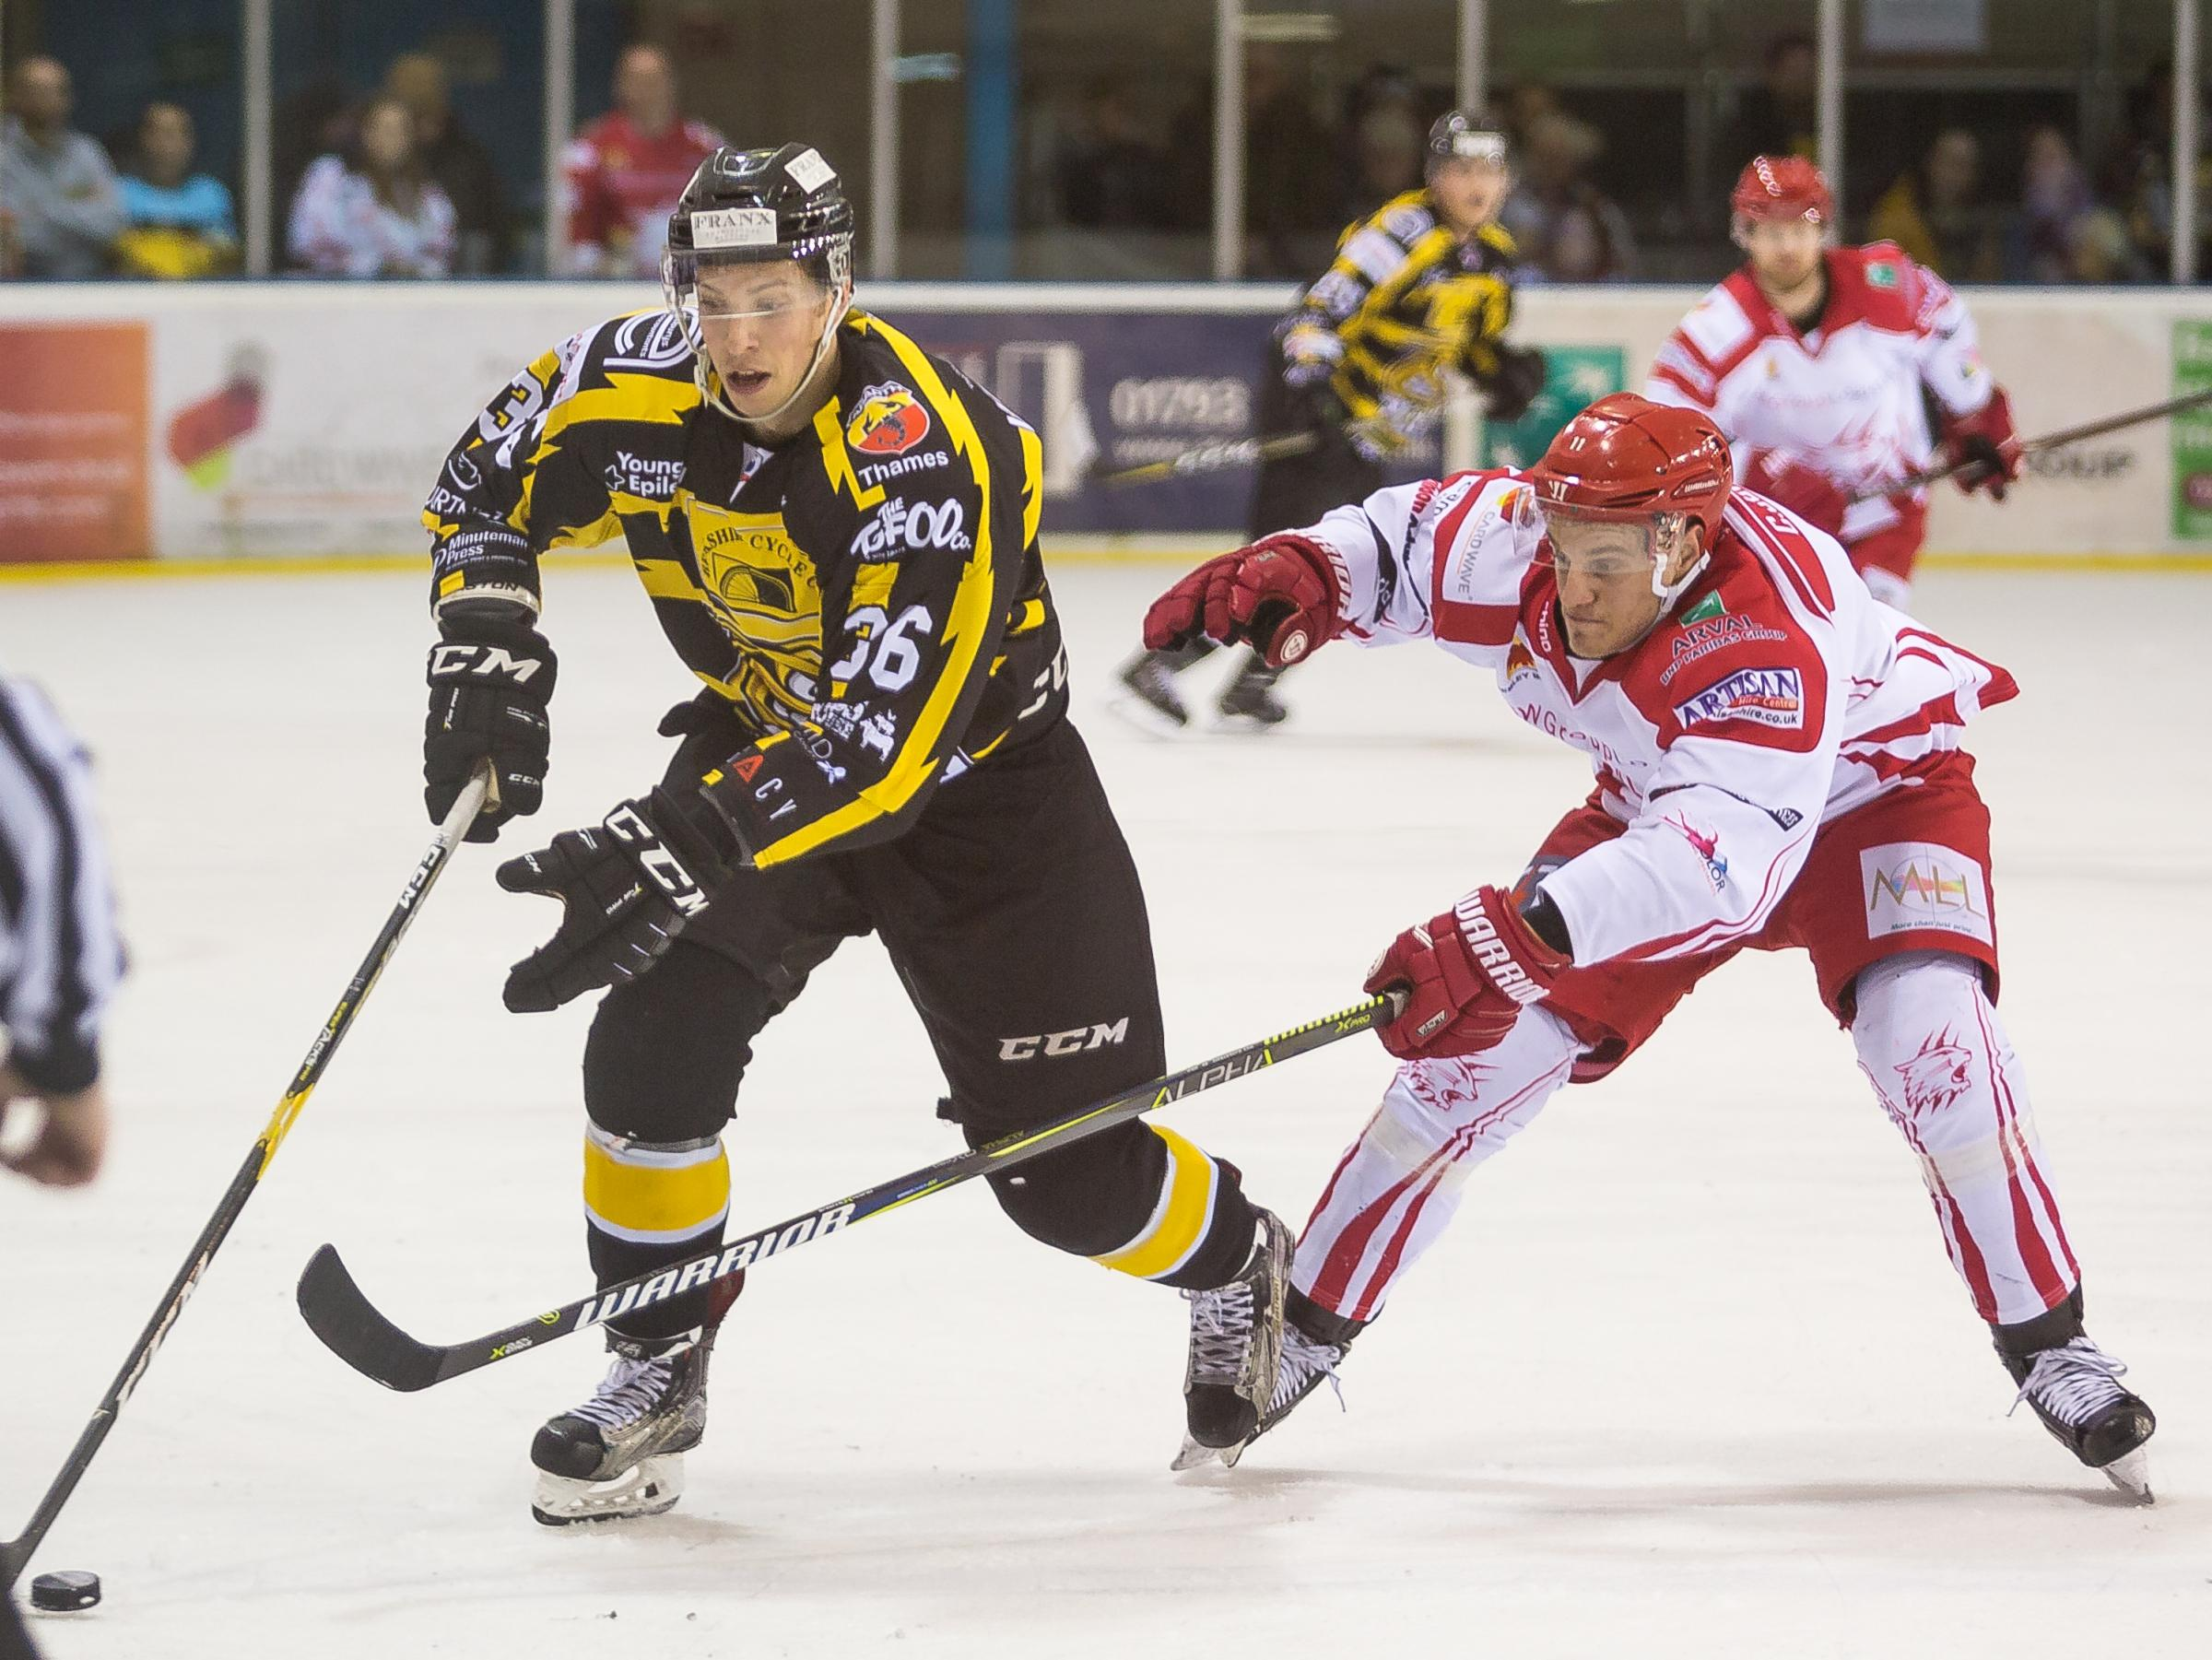 Swindon Wildcats Vs Bracknell Bees, Chris Jones in action, Picture Ryan Ainscow, 09.02.19